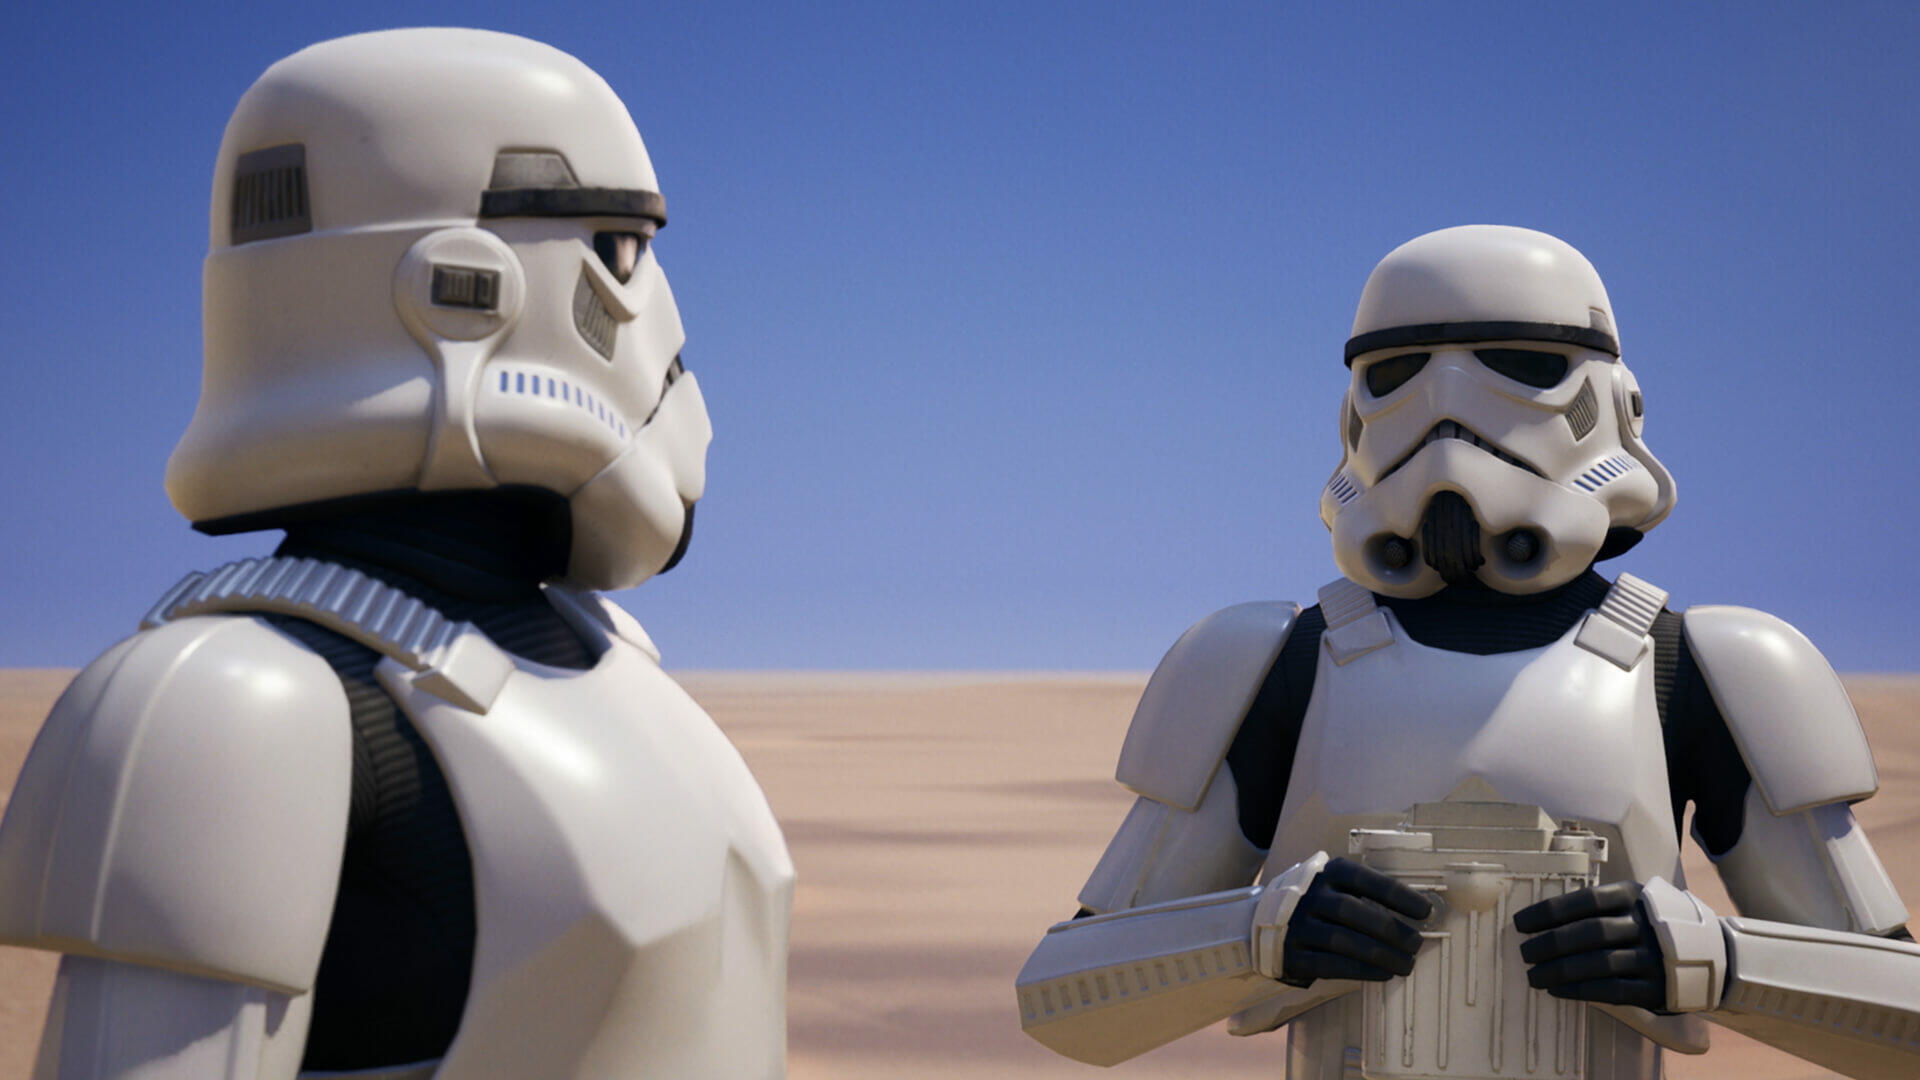 Fortnite's New Stormtrooper Skin Lets Everyone Know You Have Bad Aim